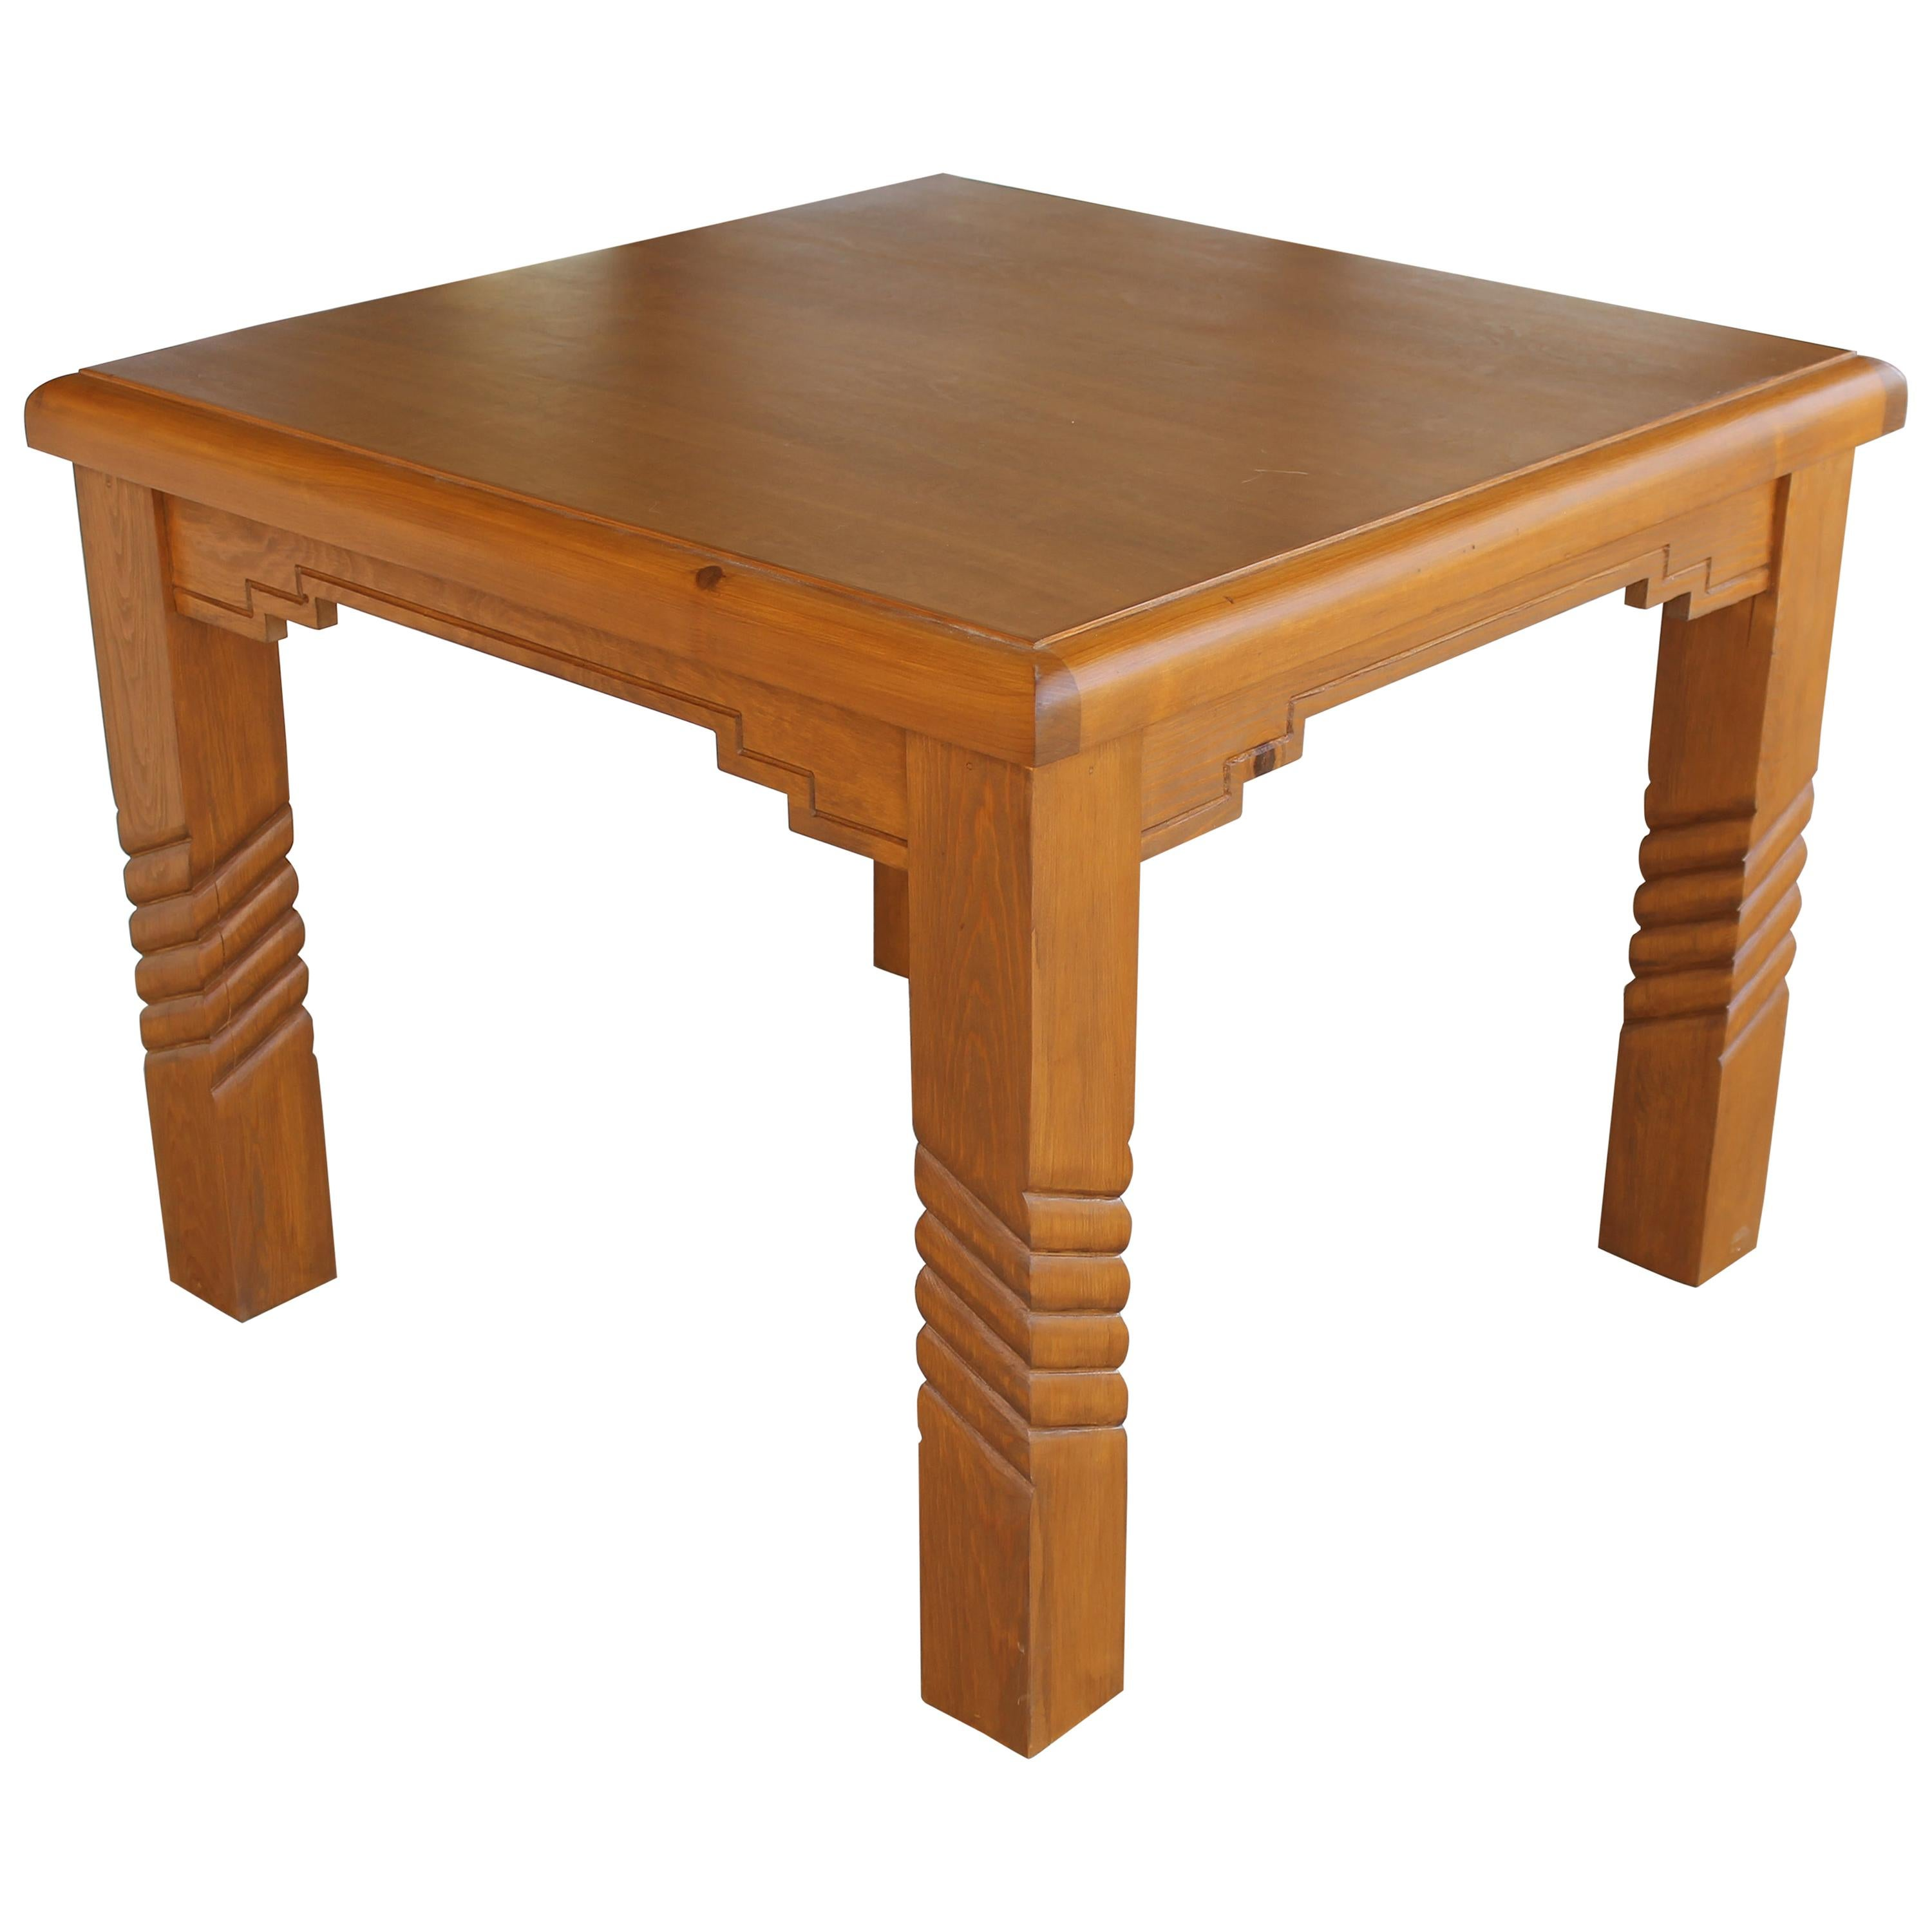 new mexican table southwest style carving